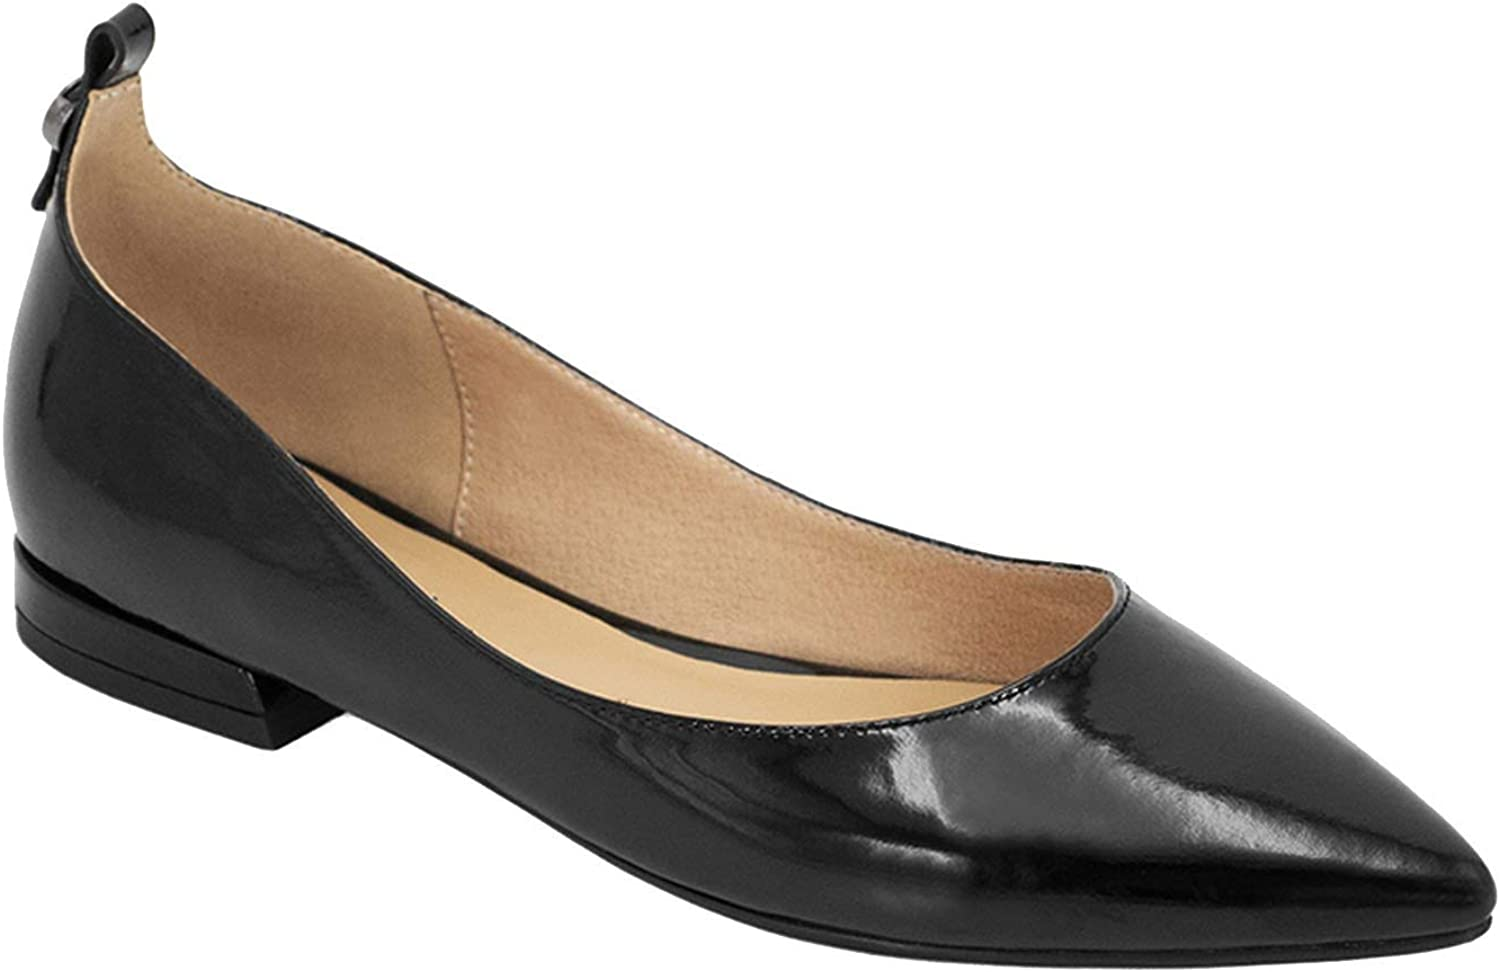 KKK-3boss-loafers Flats shoes Women Handmade Pointed Toe Slip On Career Flats Black Patent Leather Shallow